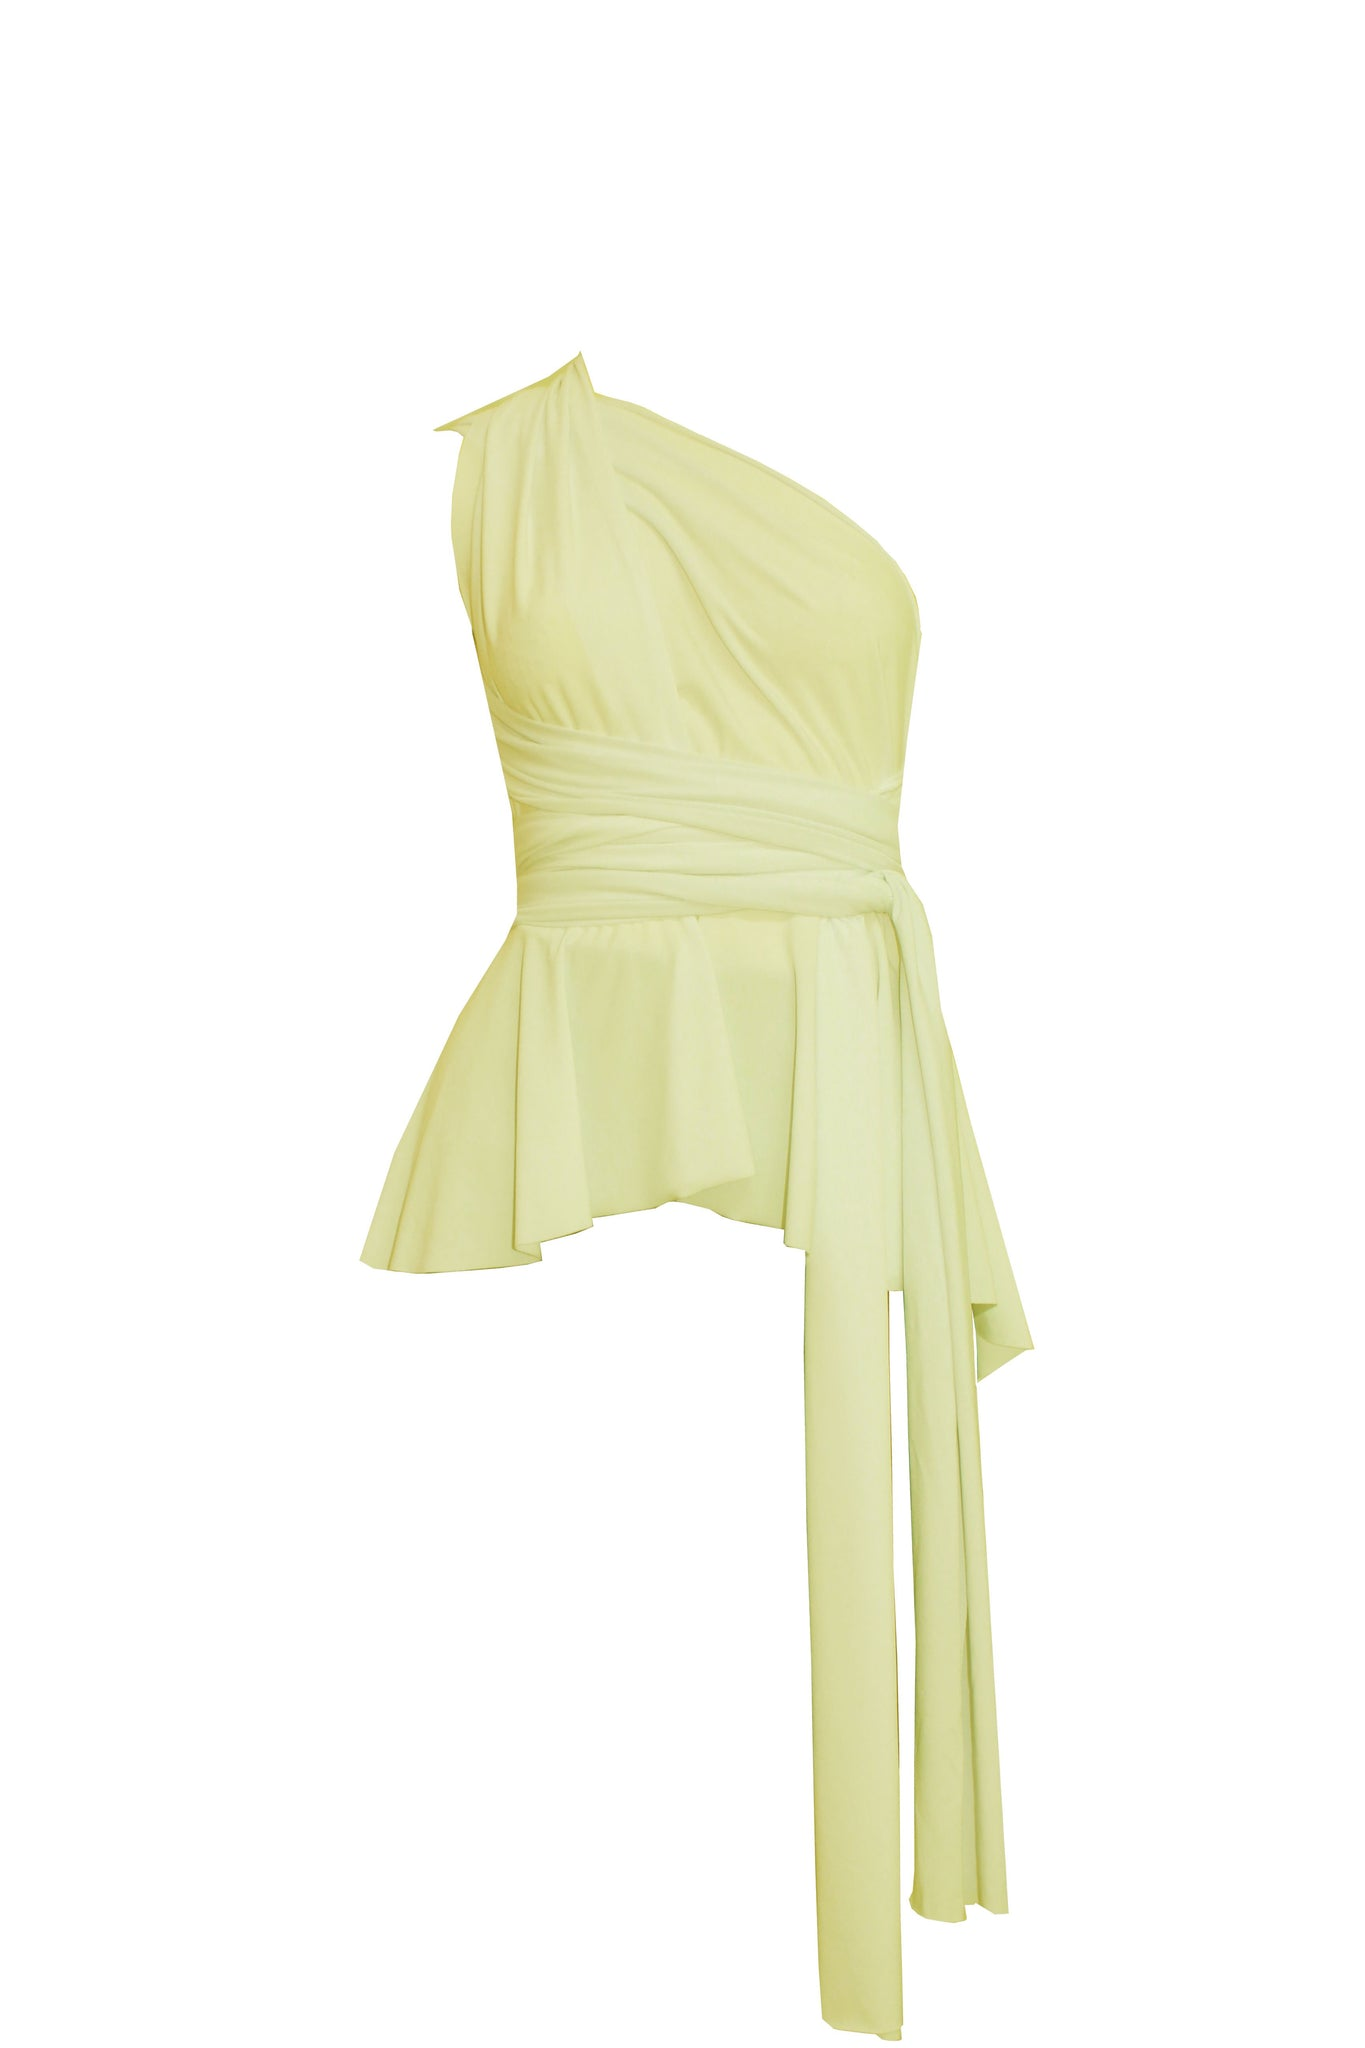 Infinity shirt Convertible light yellow peplum top Bridesmaids high low blouse Octopus prom top XS-5XL